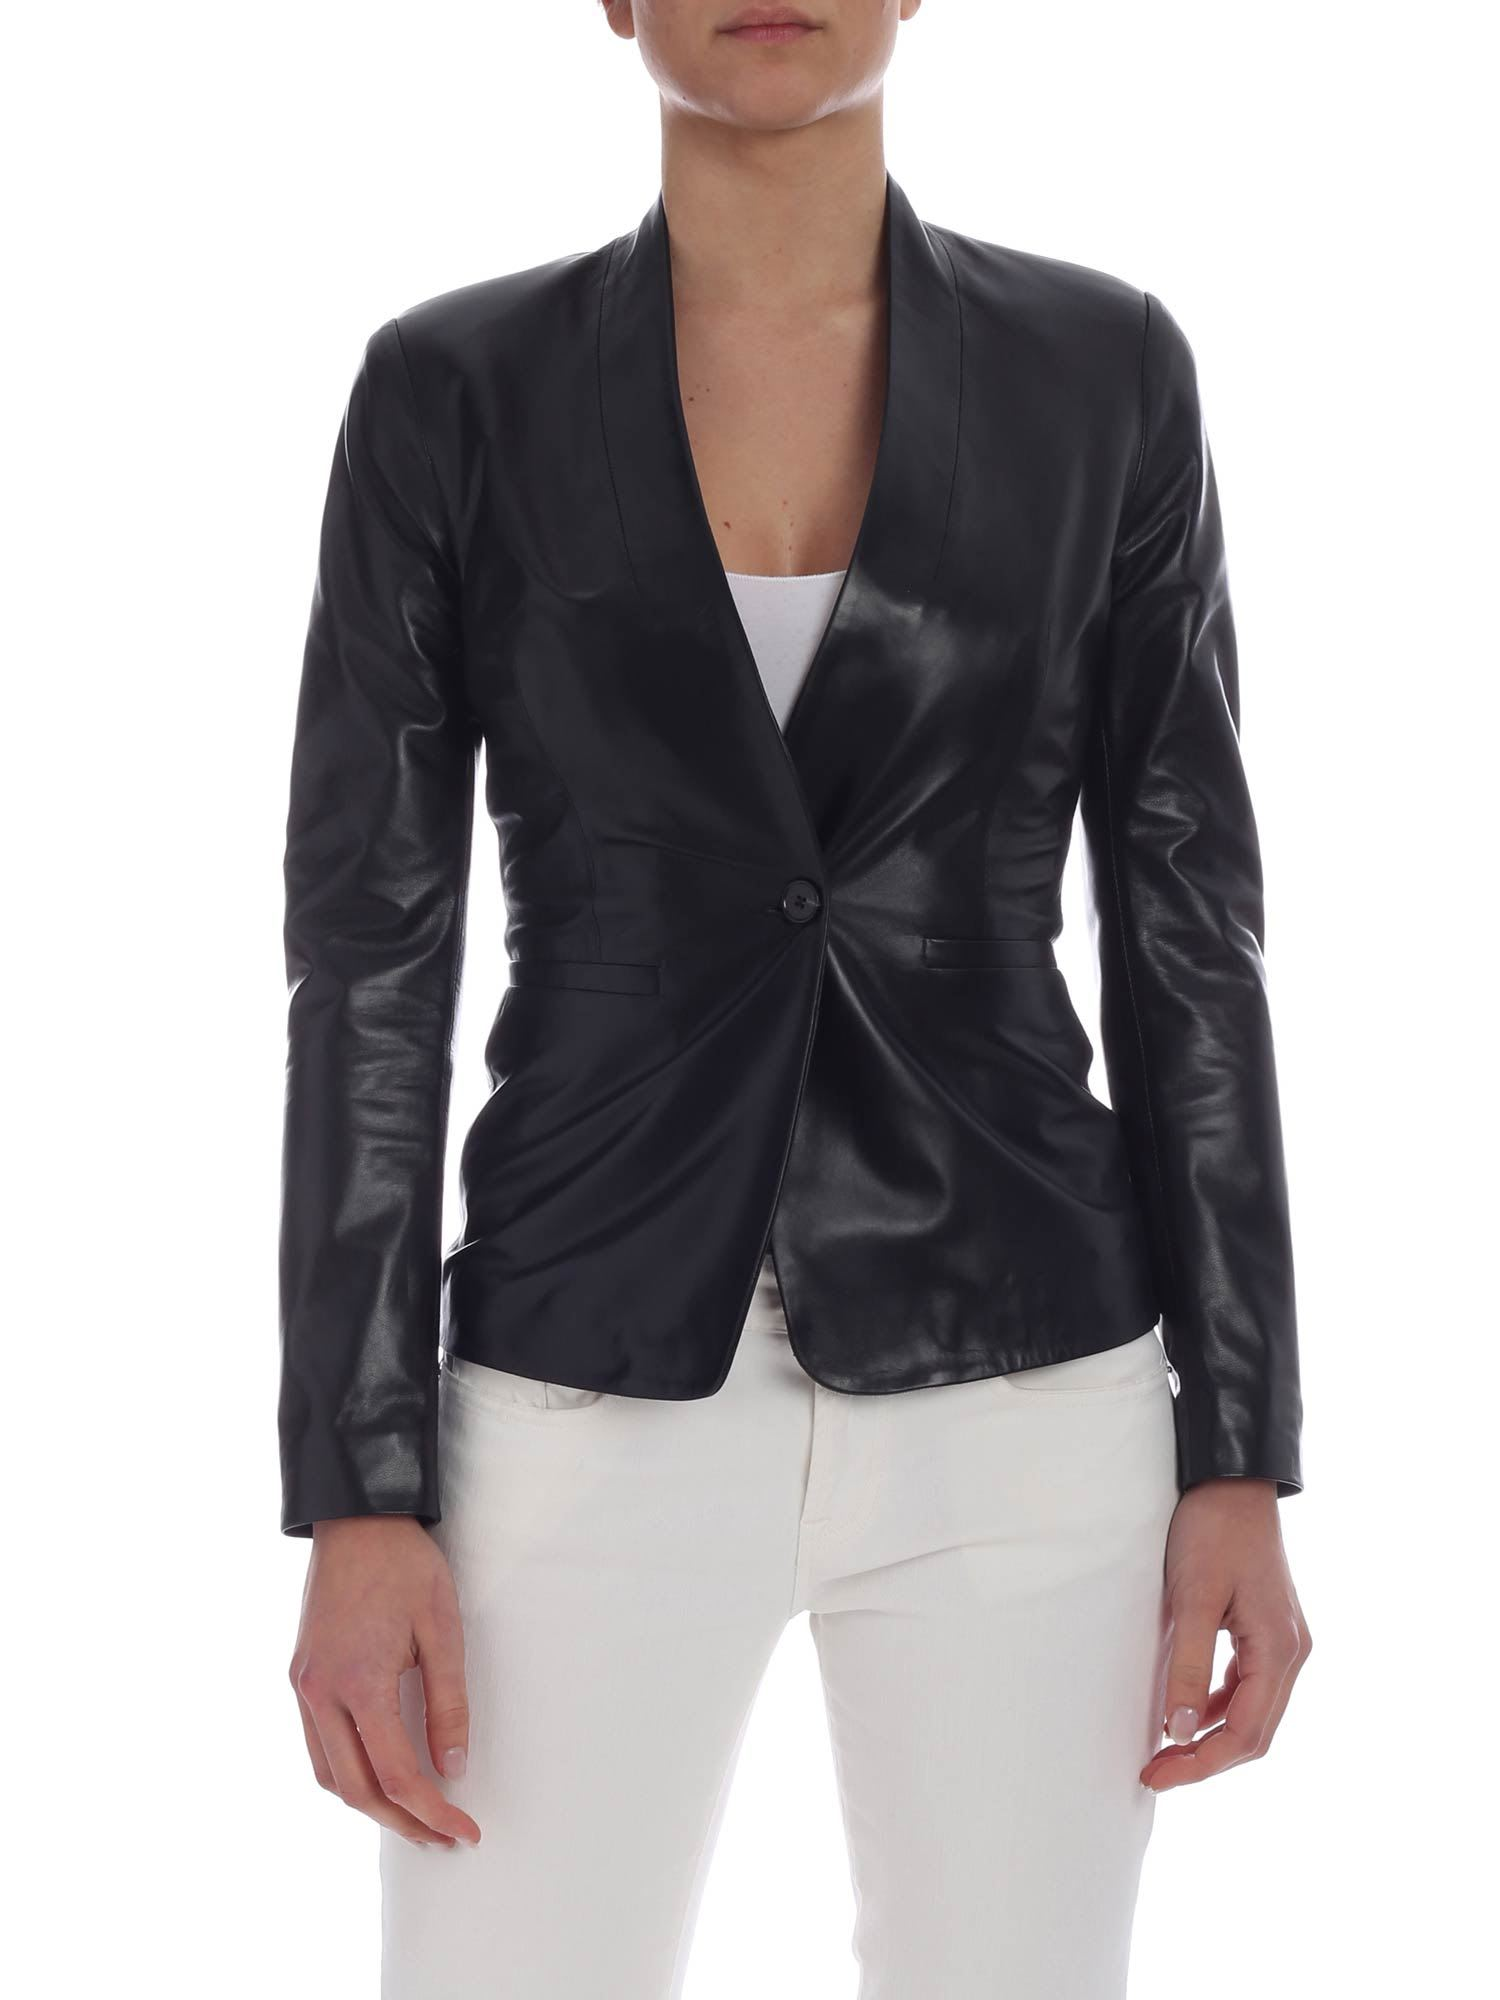 Desa – Leather Jacket